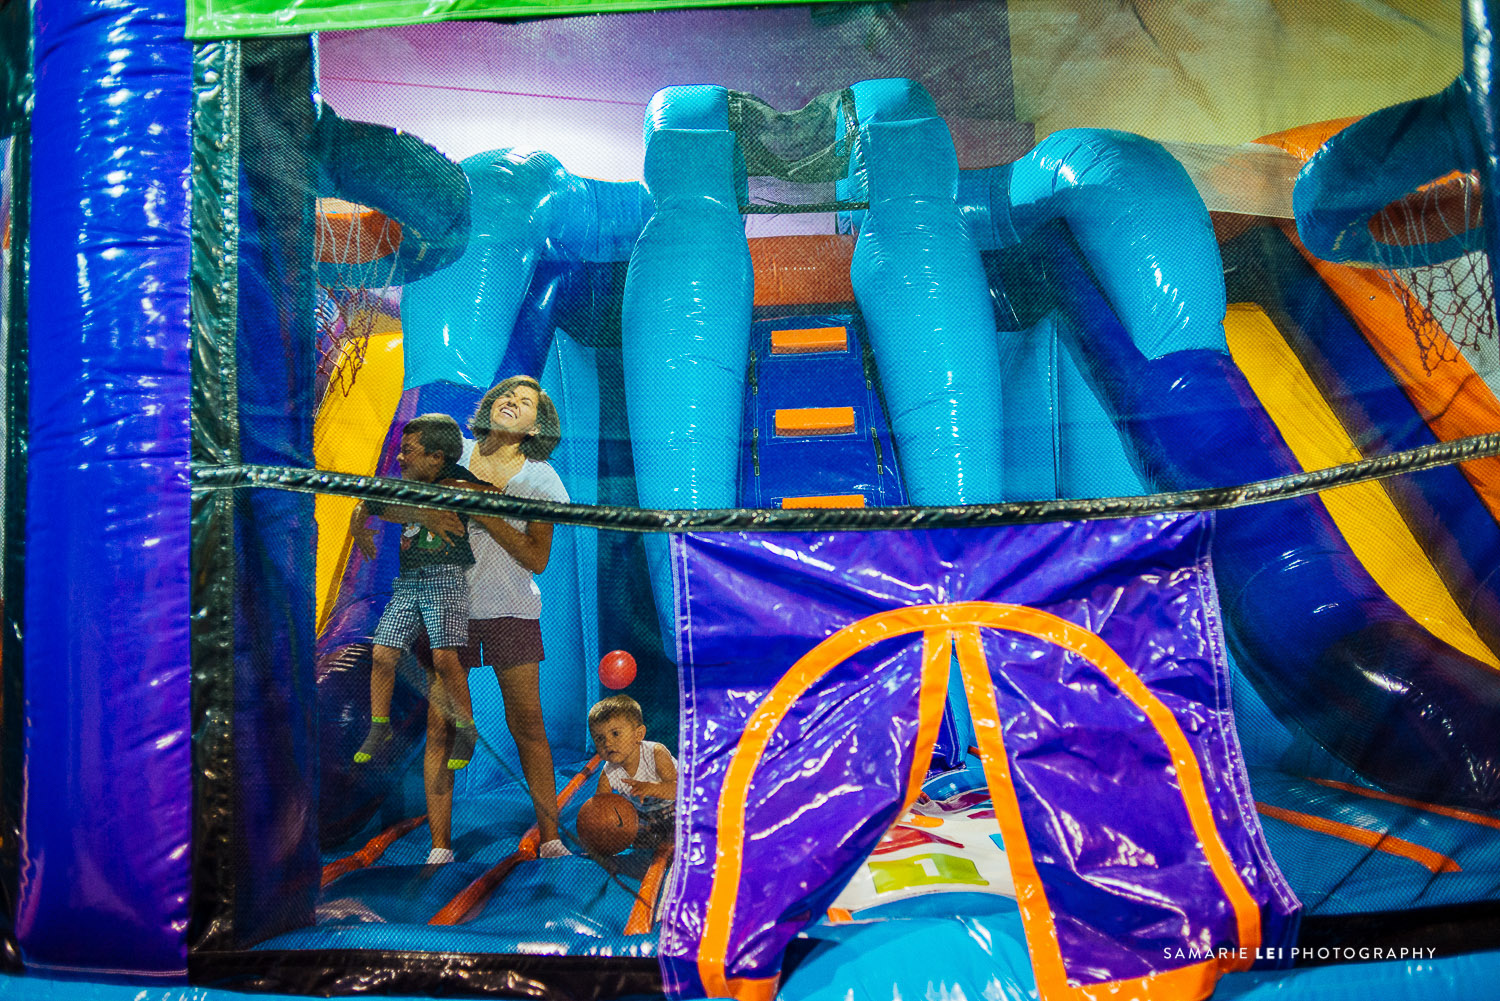 lifestyle day in the life katy family bounce photography-16.jpg